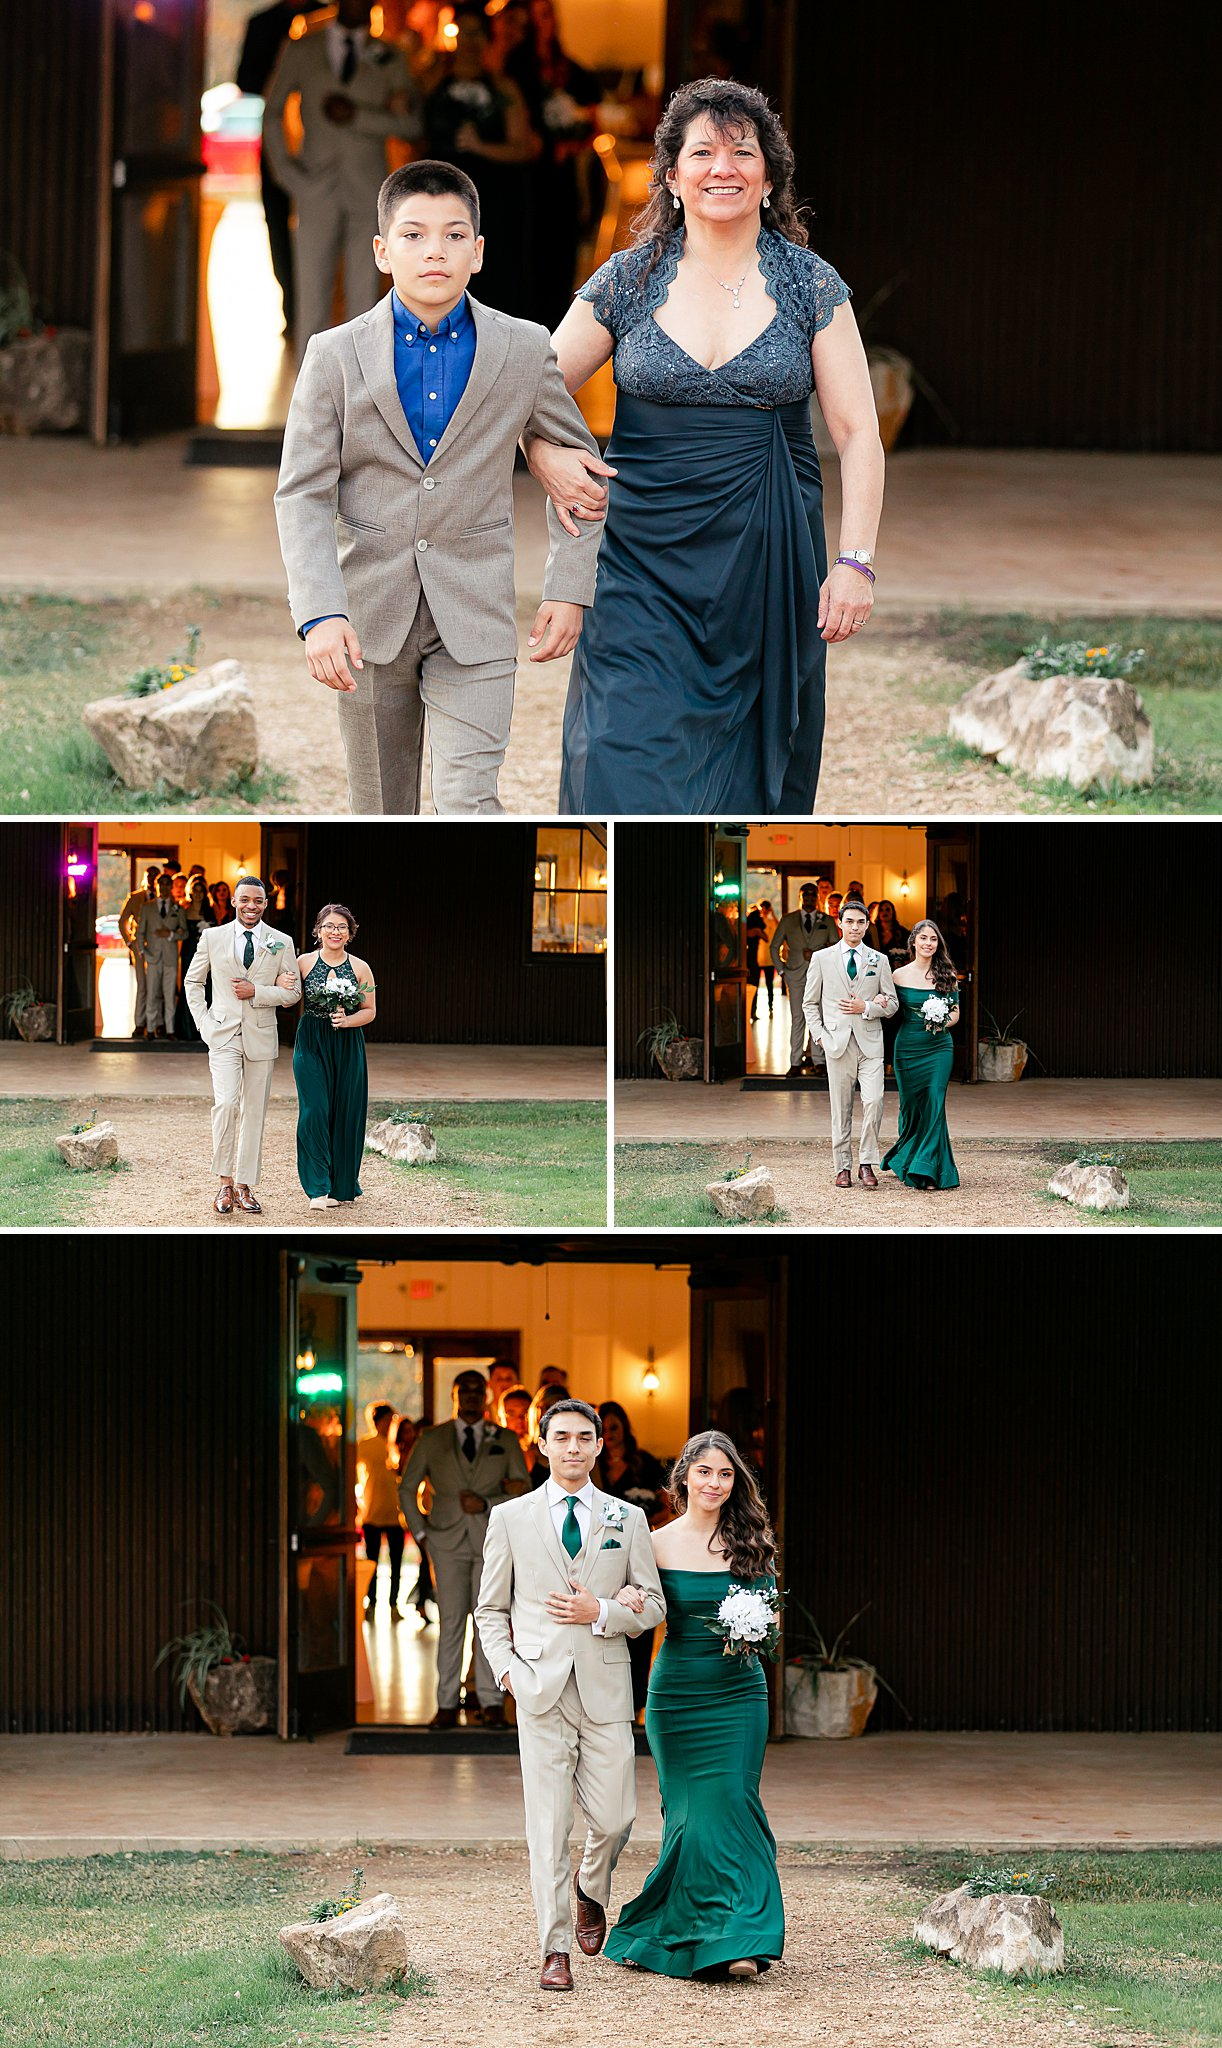 Carly-Barton-Photography-Texas-Wedding-Photographer-Western-Sky-Wedding-Event-Venue-Emerald-Green-Theme_0012.jpg